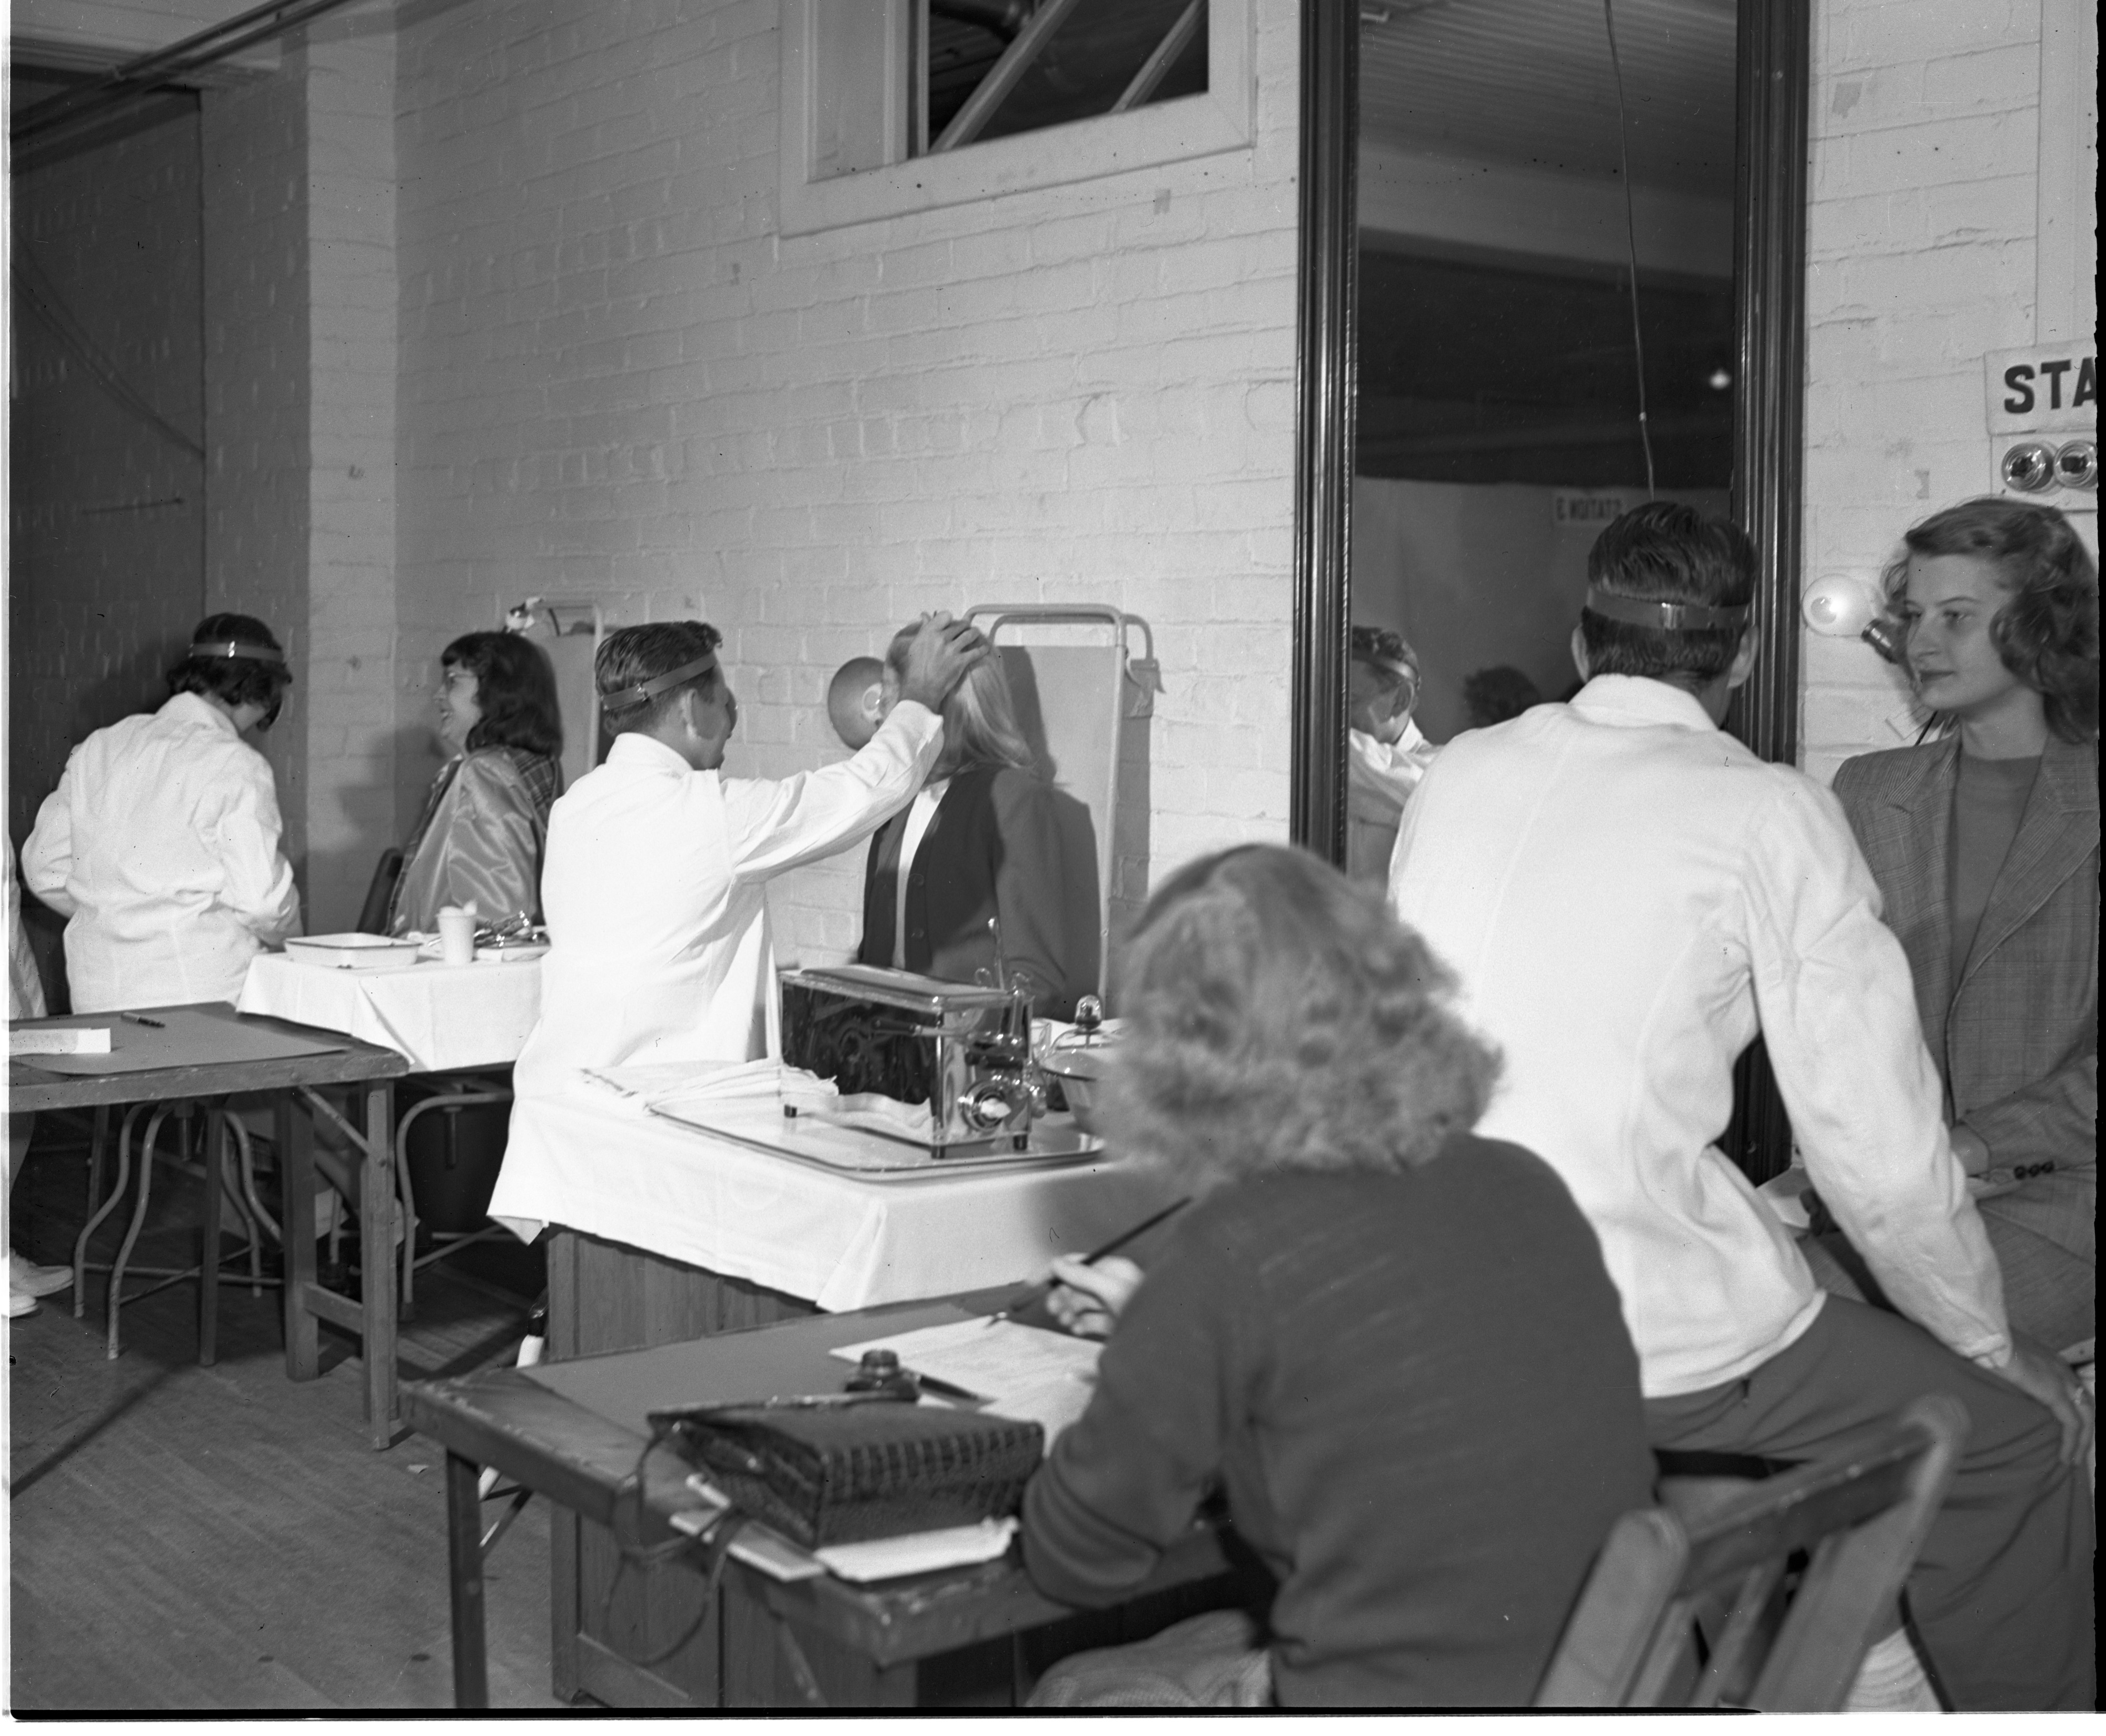 New University Of Michigan Students Receive Ear, Nose, and Throat Exams, September 1947 image